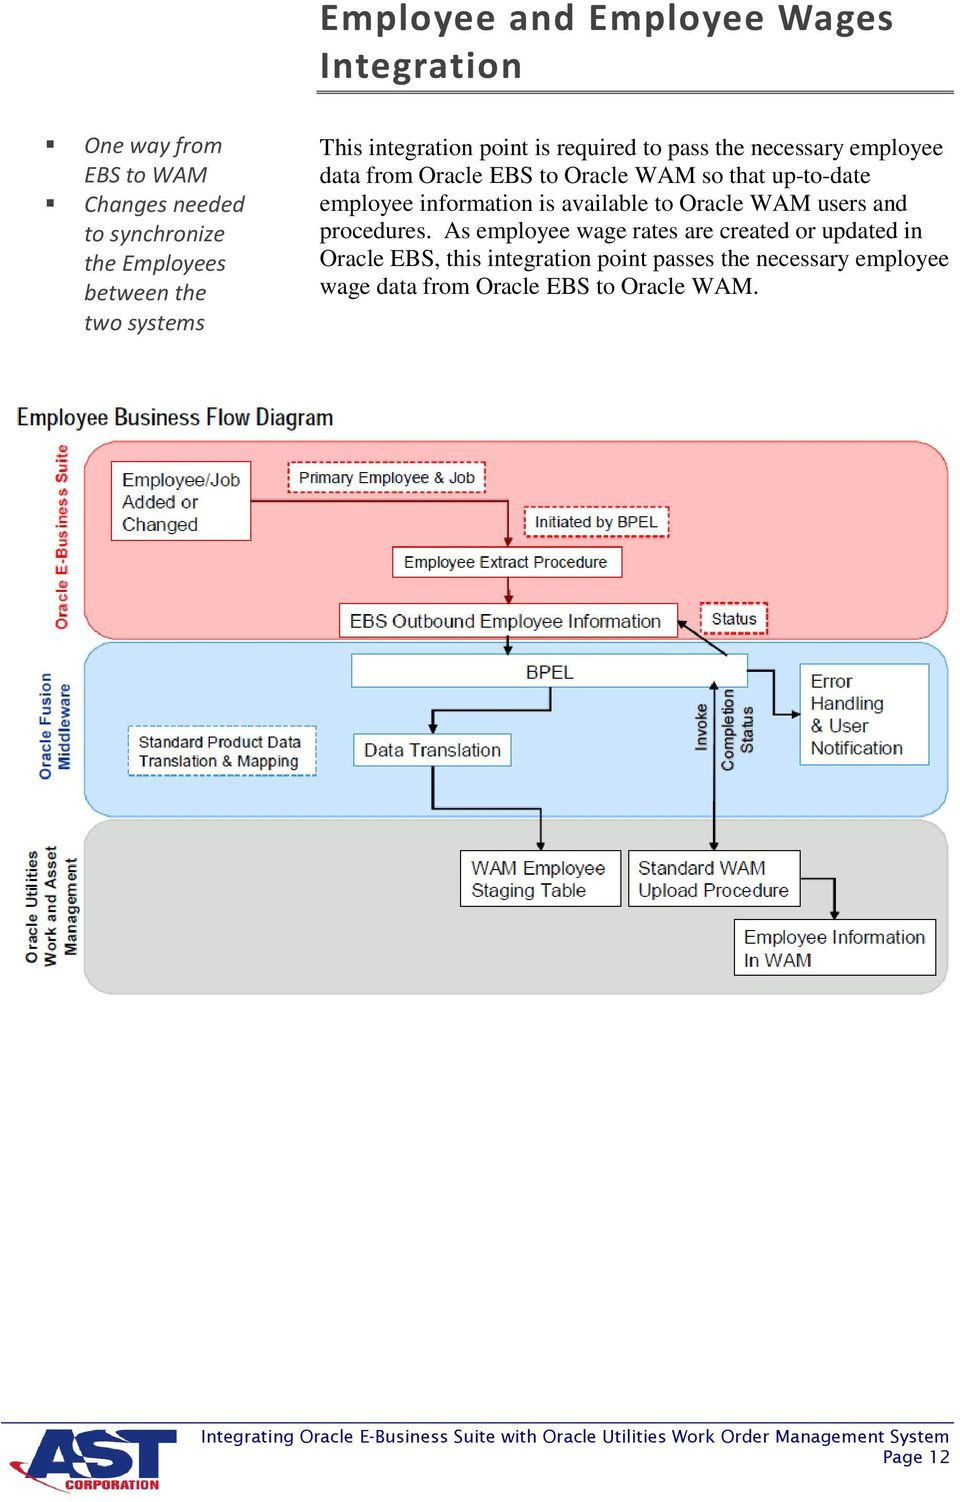 hight resolution of up to date employee information is available to oracle wam users and procedures